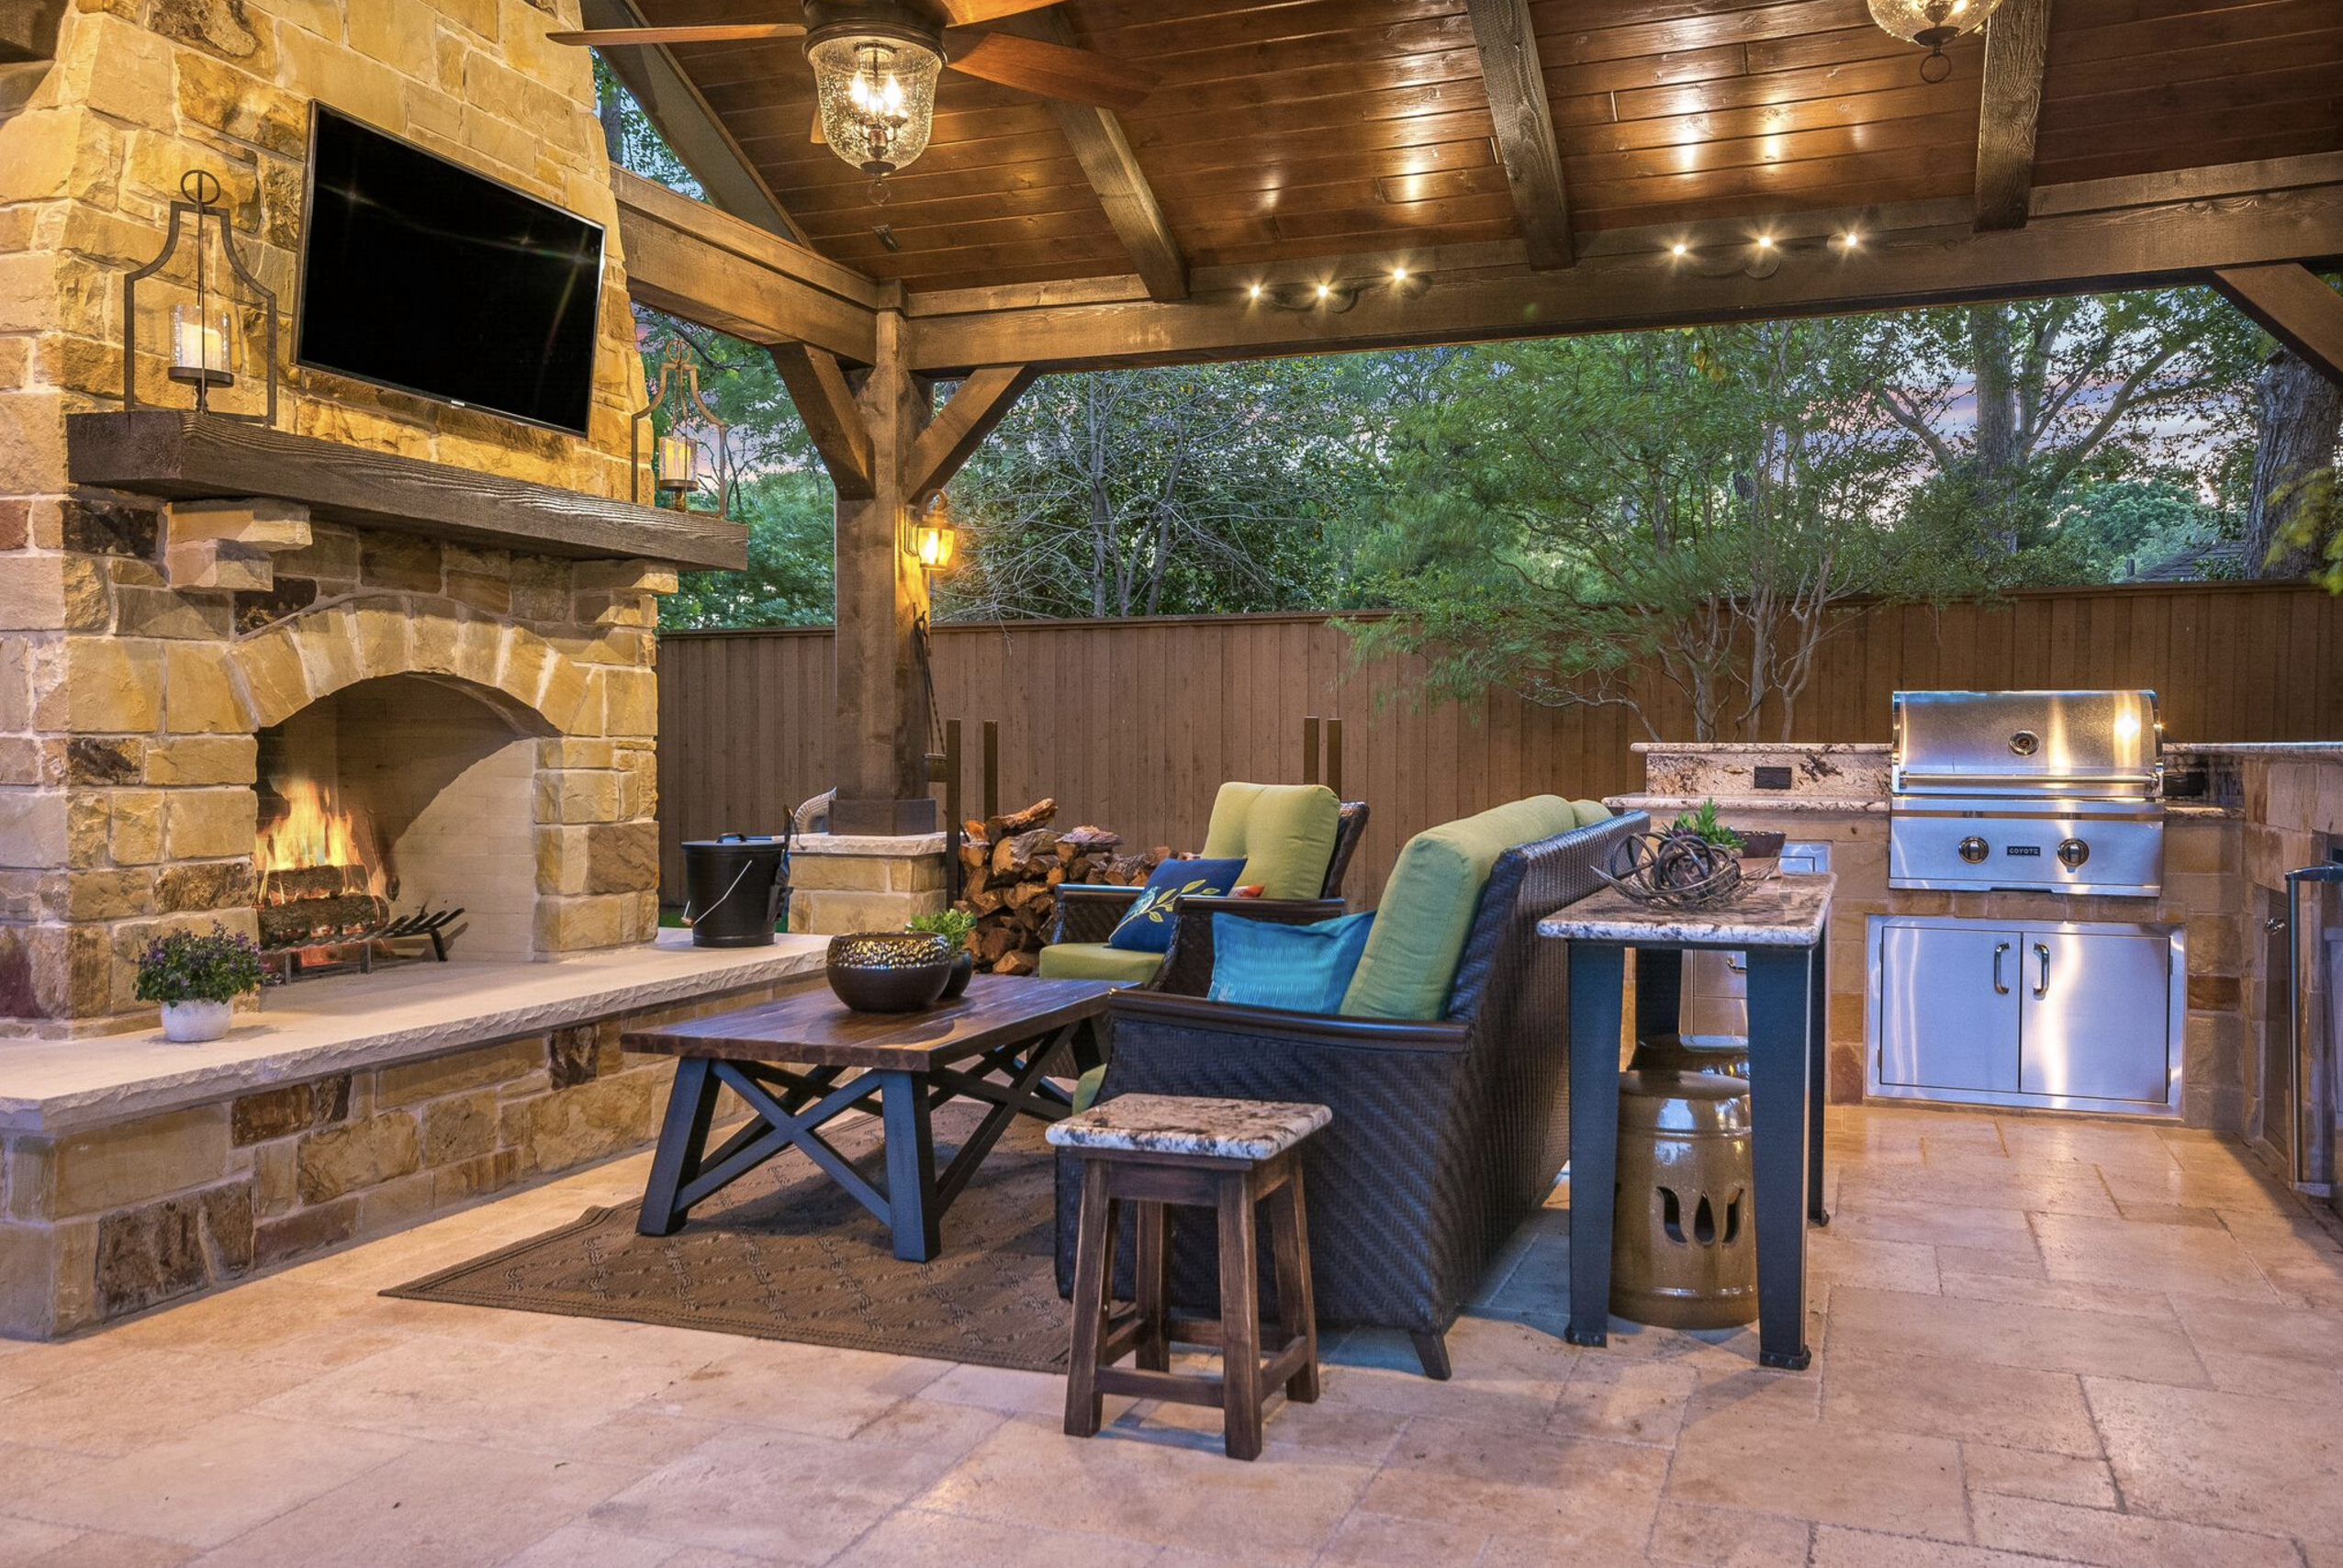 Rustic Outdoor Living Space With Outdoor Kitchen By Texas Custom Patios Outdoor Remodel Outdoor Covered Patio Outdoor Fireplace Plans